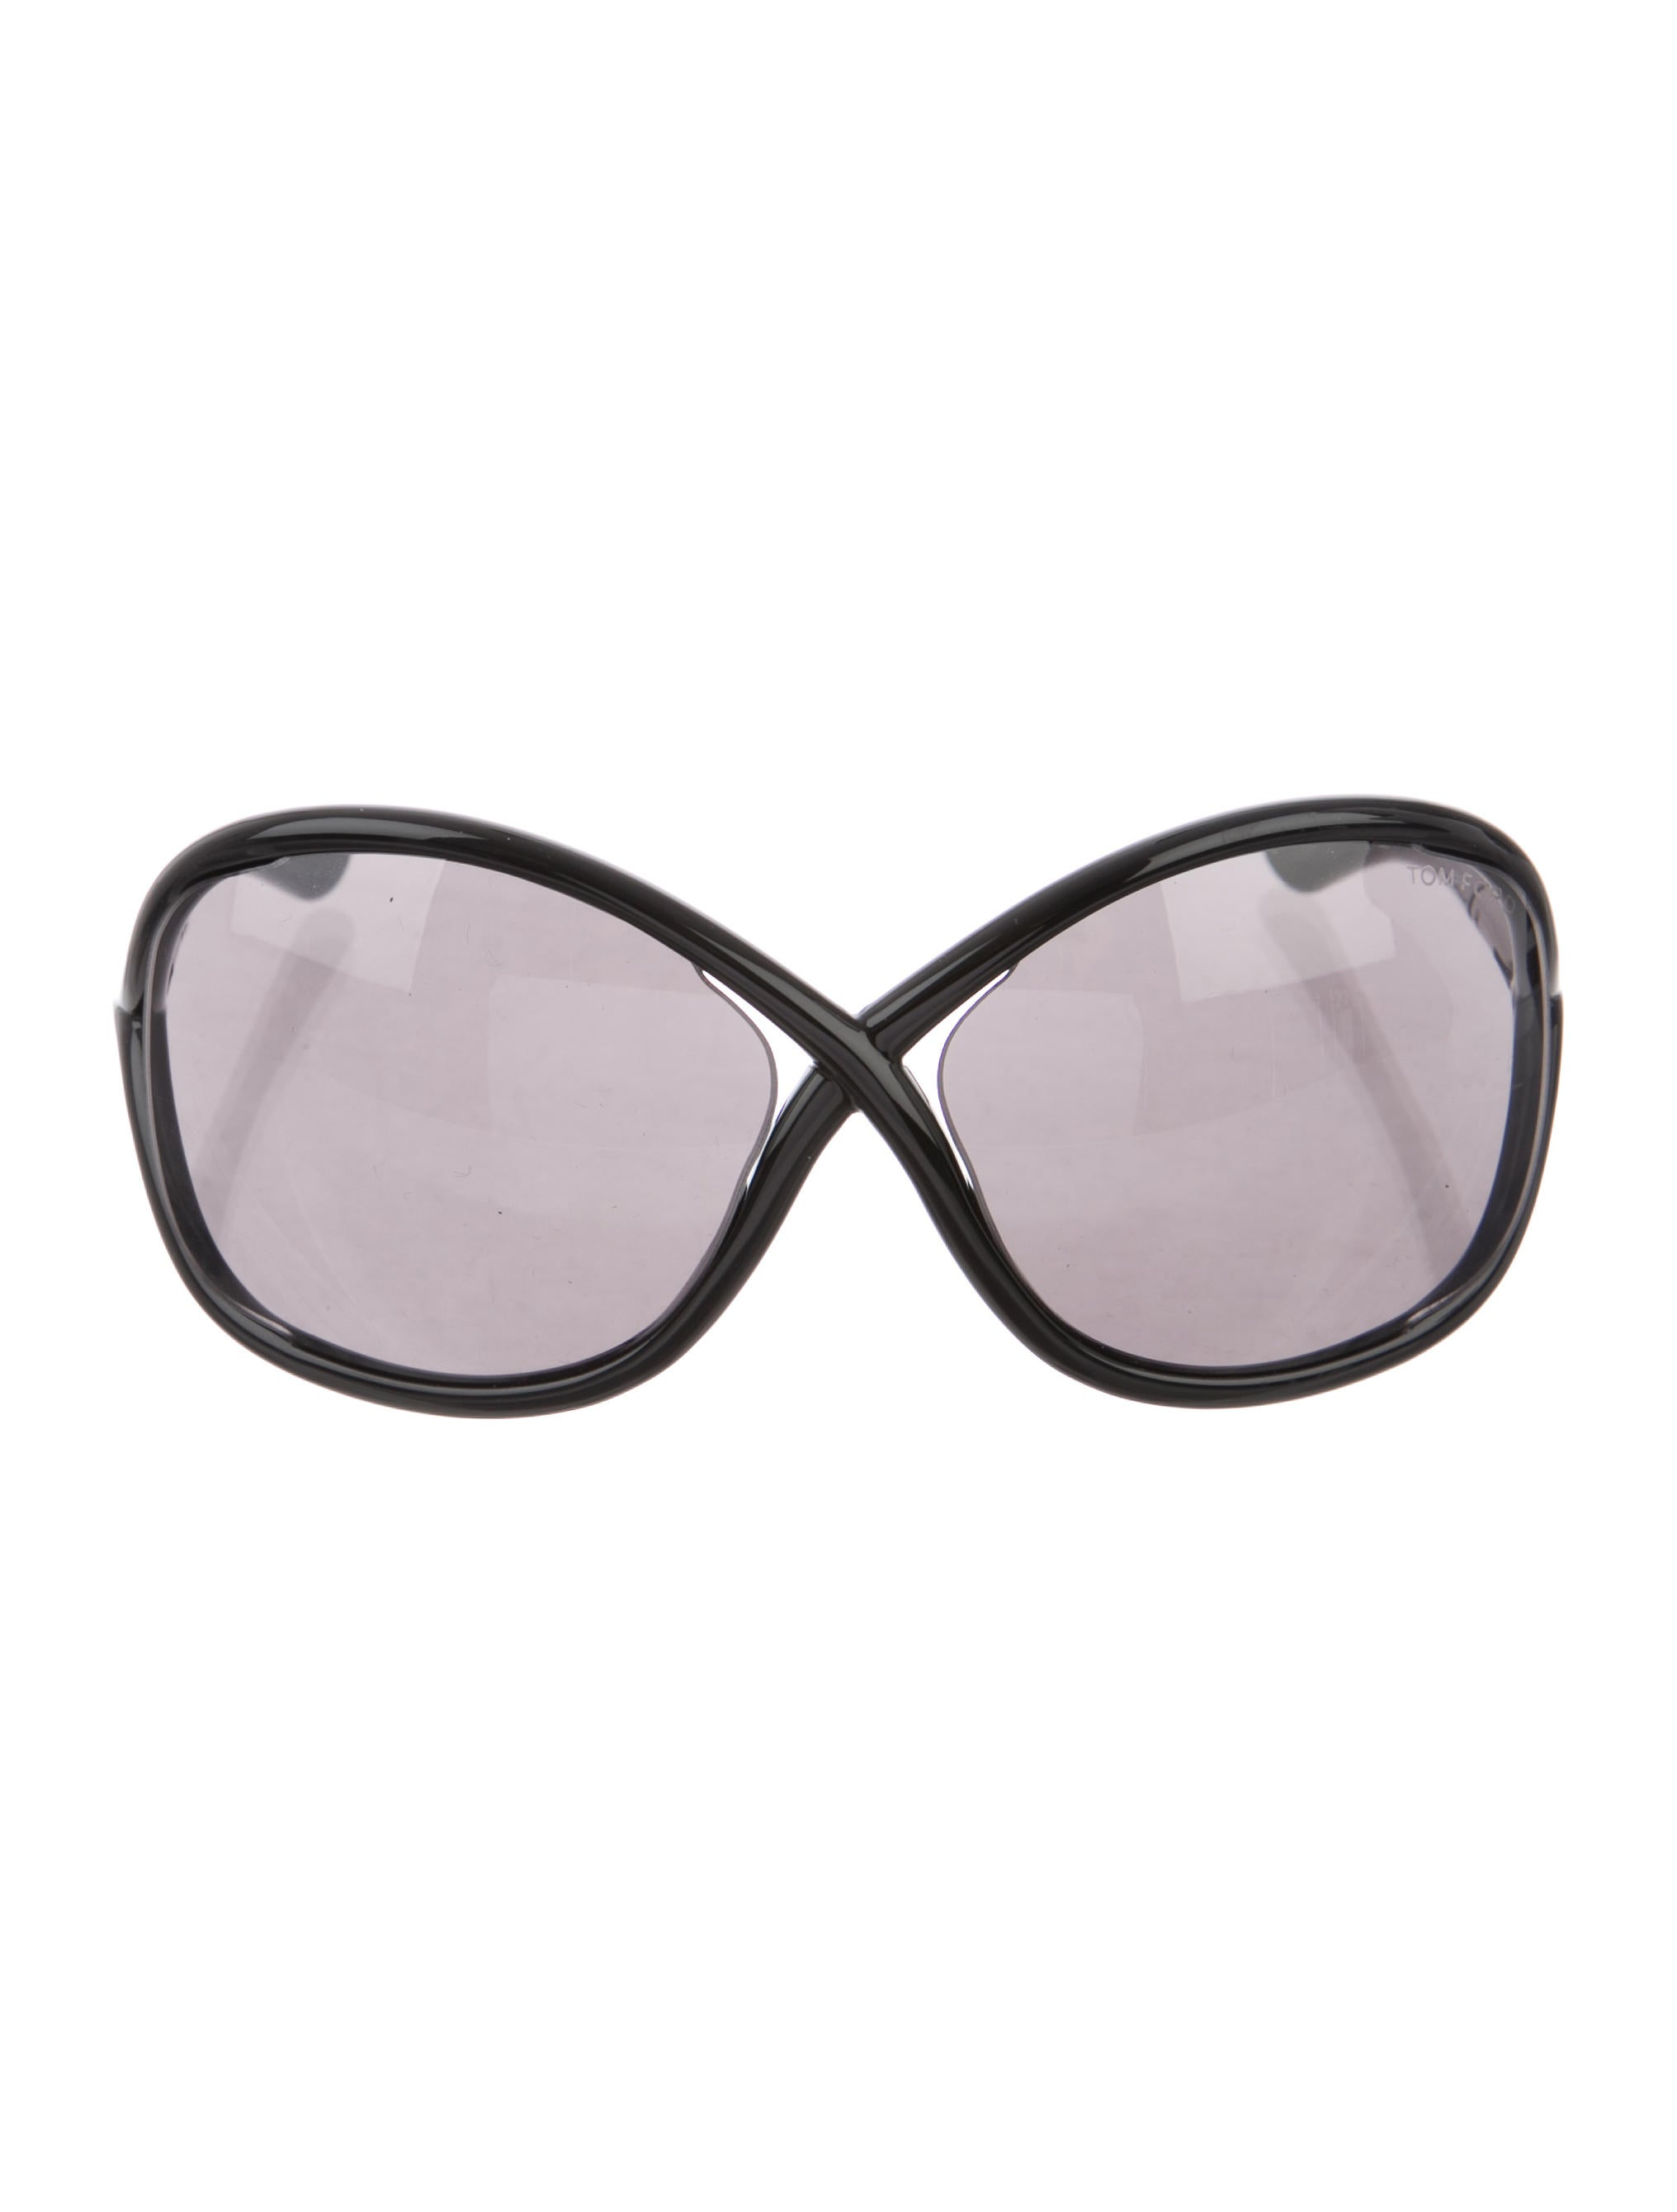 1d920354065 Tom Ford Whitney Tinted Sunglasses - Accessories - TOM44415